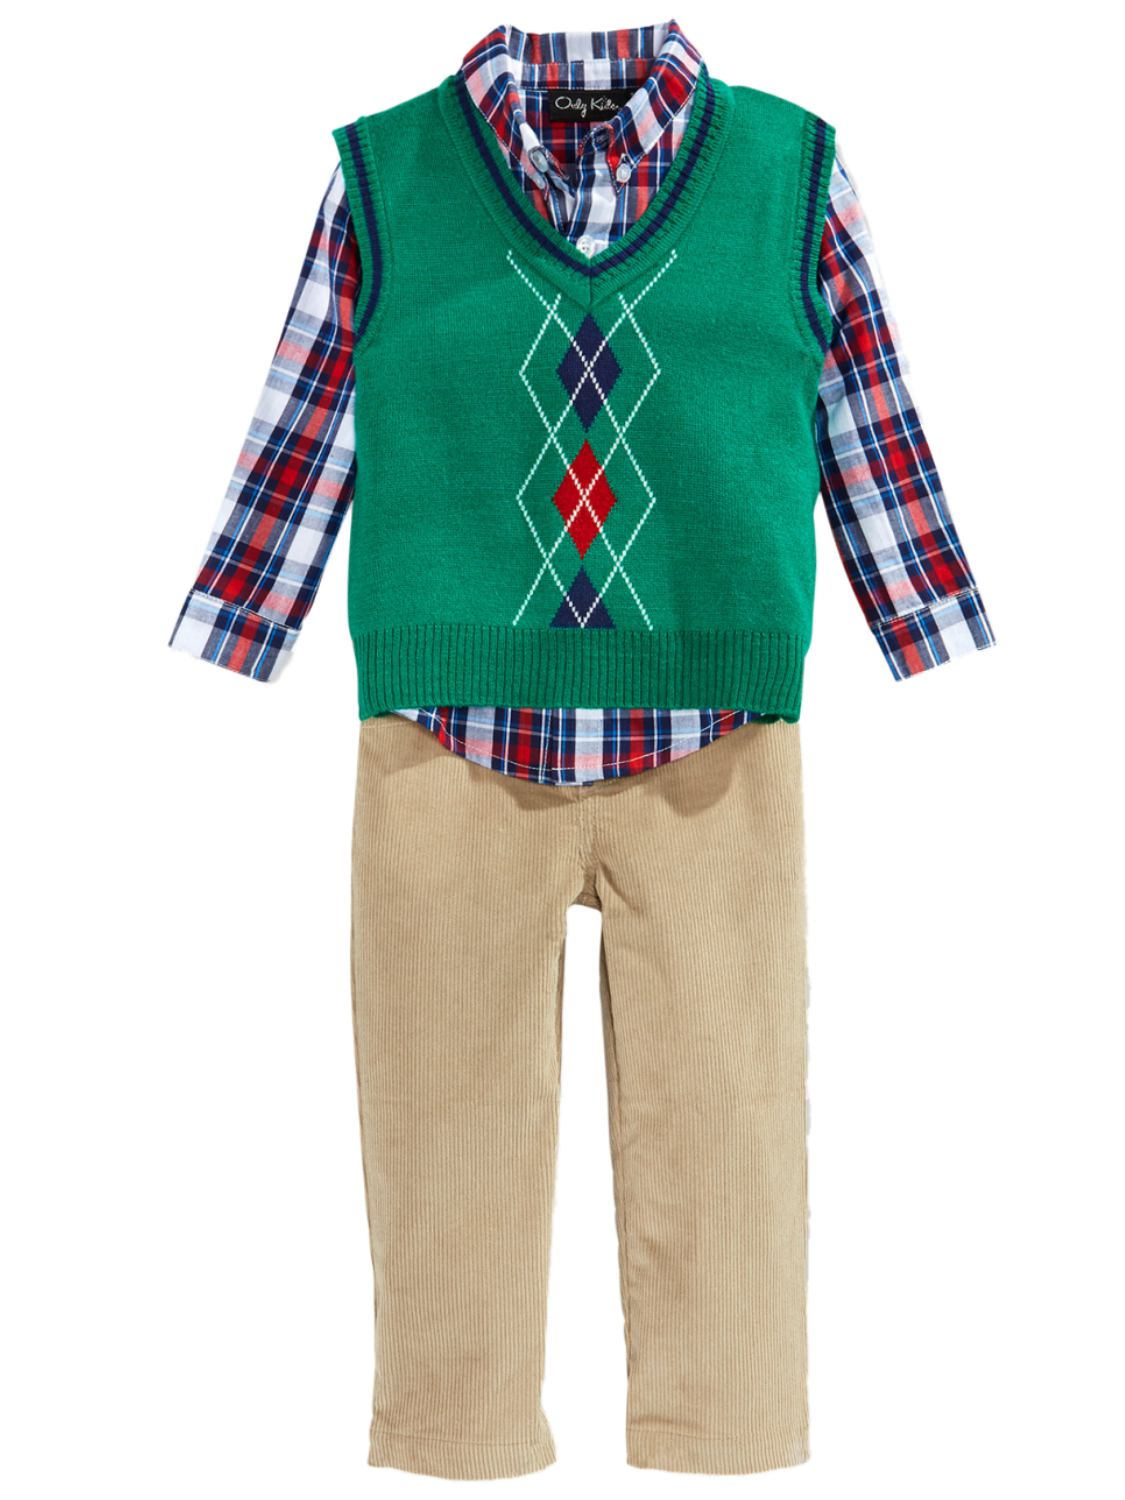 Only Kids Only Kids Infant Boys 3 Piece Dress Up Outfit Pants Shirt & Green Sweater Vest